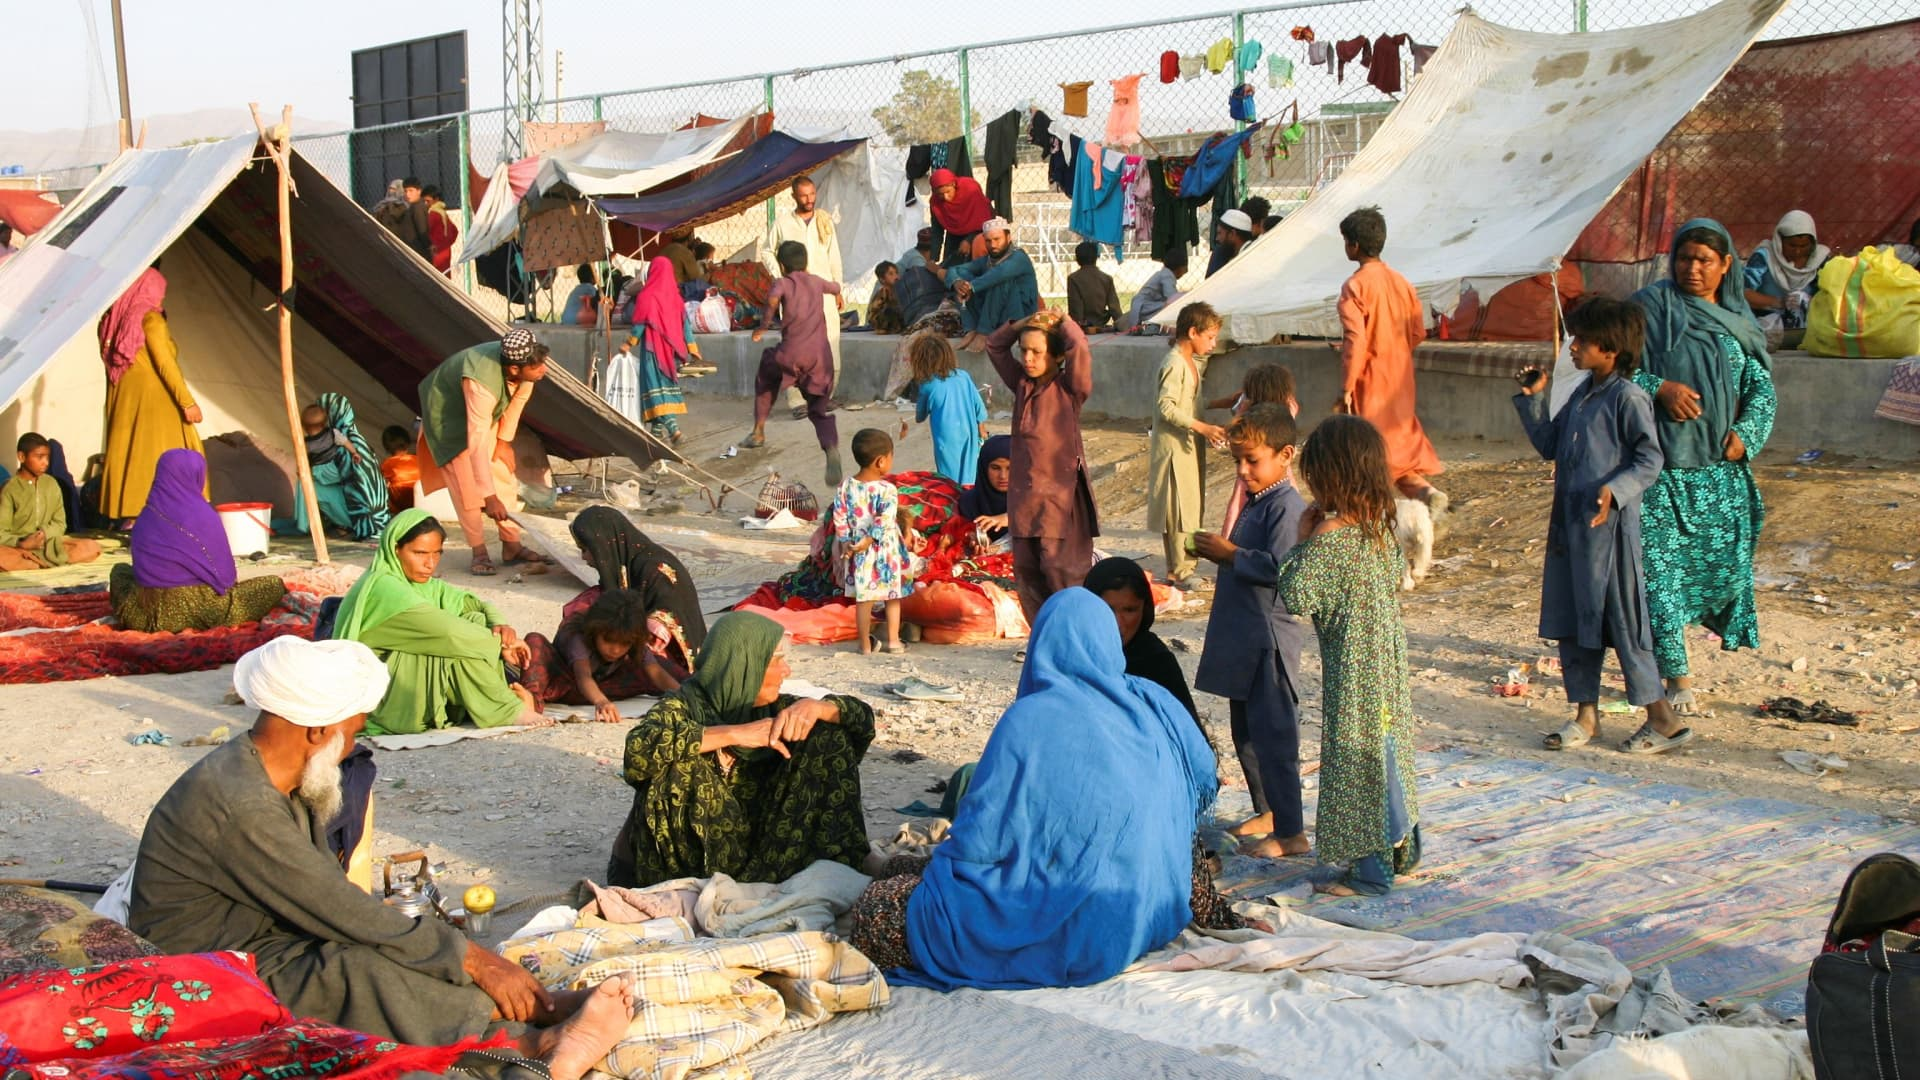 Families who arrived from Afghanistan are seen at their makeshift tents as they take refuge near a railway station in Chaman, Pakistan September 1, 2021.